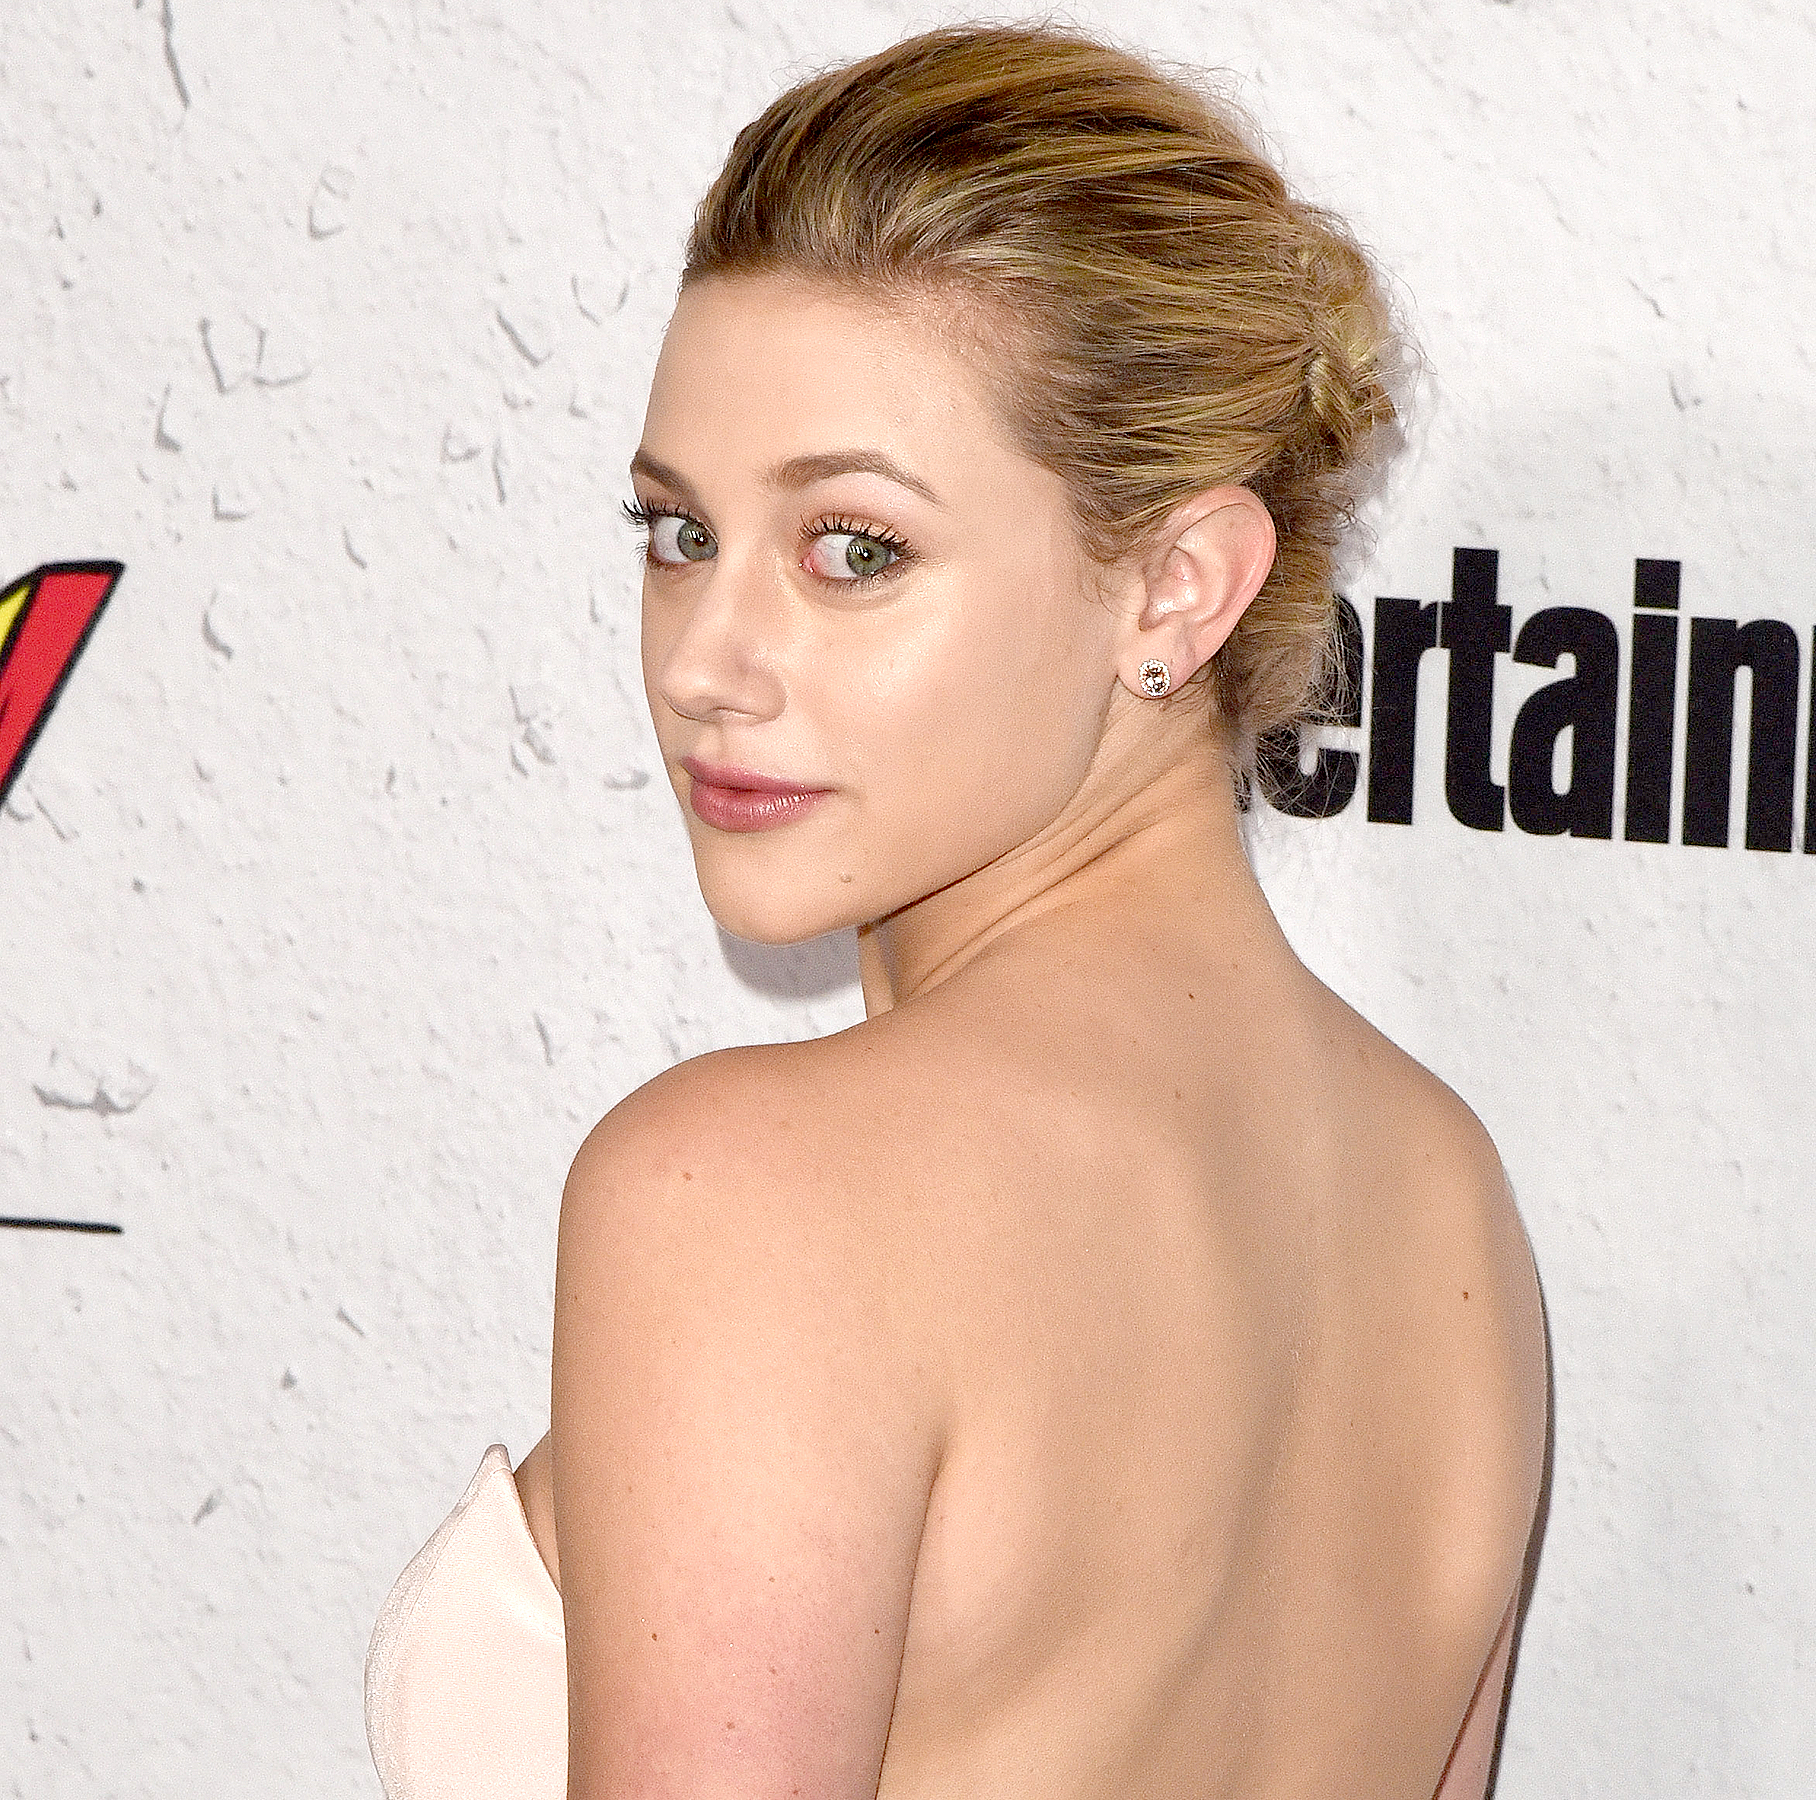 Lili Reinhart attends Entertainment Weekly's annual Comic-Con party in celebration of Comic-Con 2017 at Float at Hard Rock Hotel San Diego on July 22, 2017 in San Diego, California.